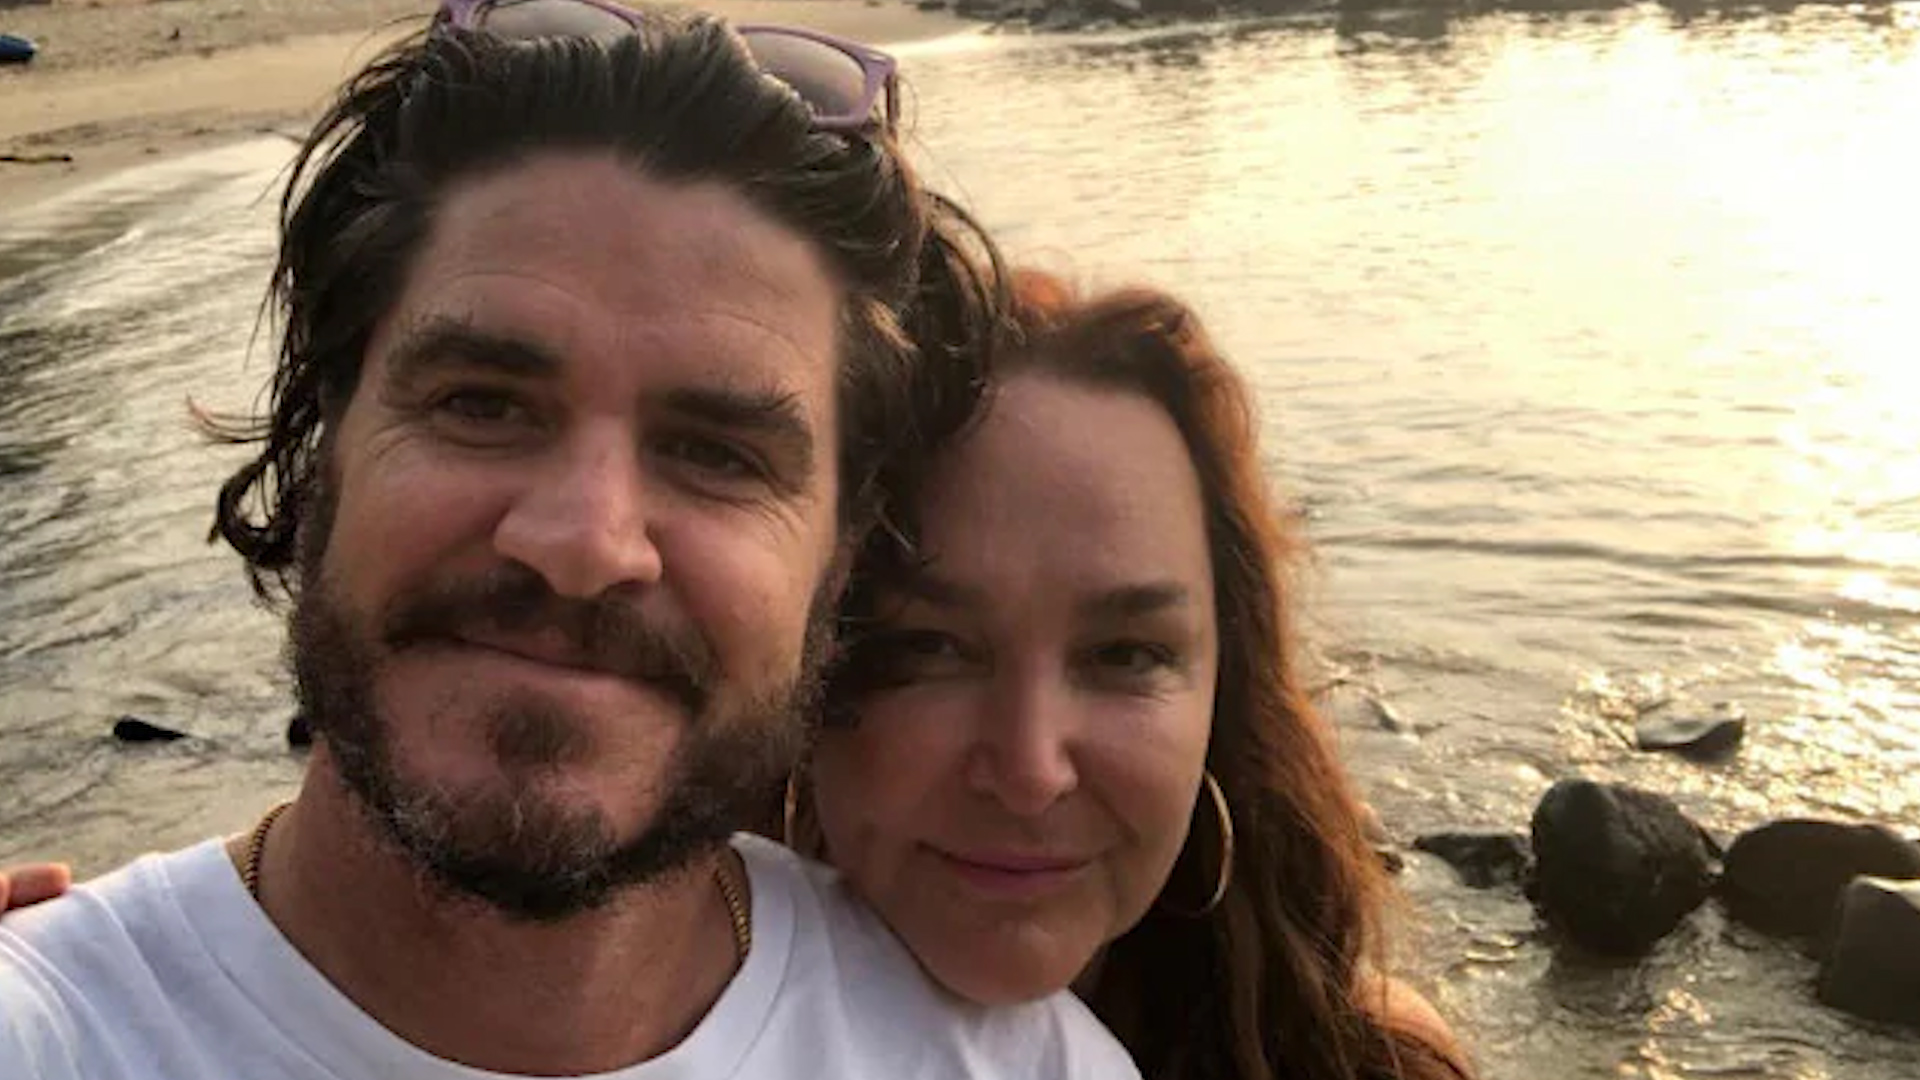 Hughesy & Kate: Kate Langbroek is moving to Italy